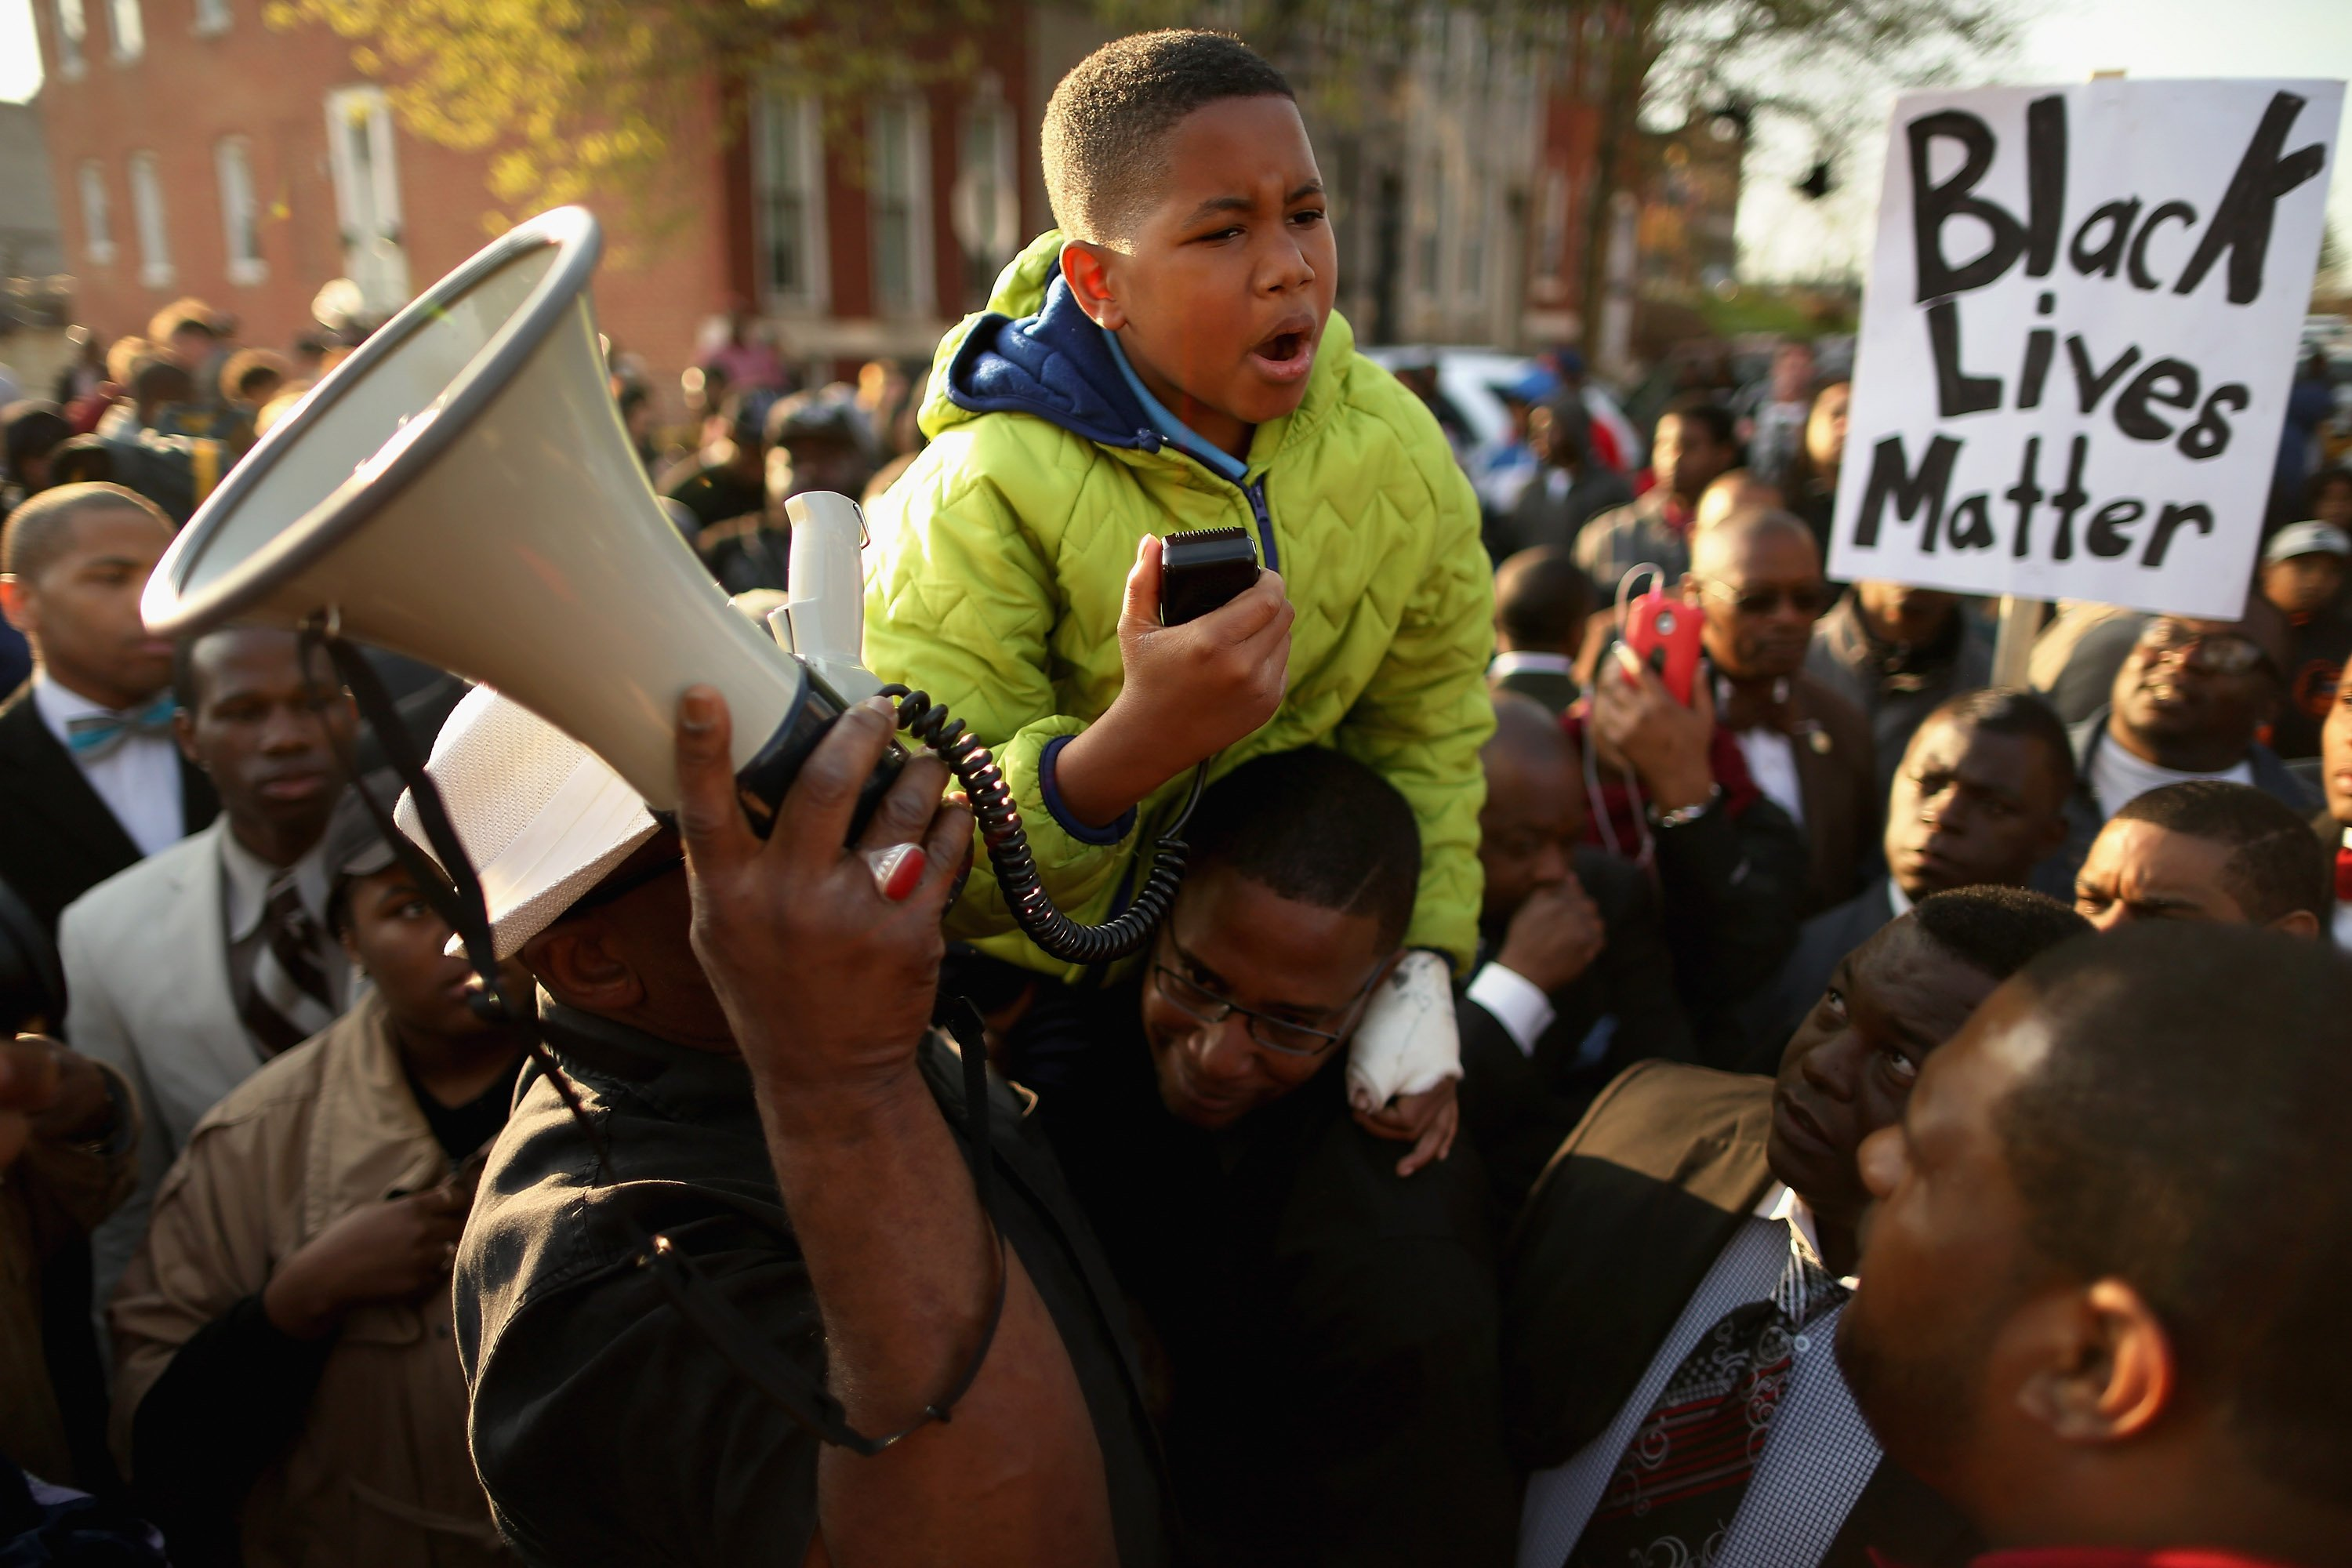 Ten-year-old Robert Dunn uses a megaphone to address hundreds of demonstrators during a protest against police brutality and the death of Freddie Gray outside the Baltimore Police Western District station in Baltimore on April 22, 2015.